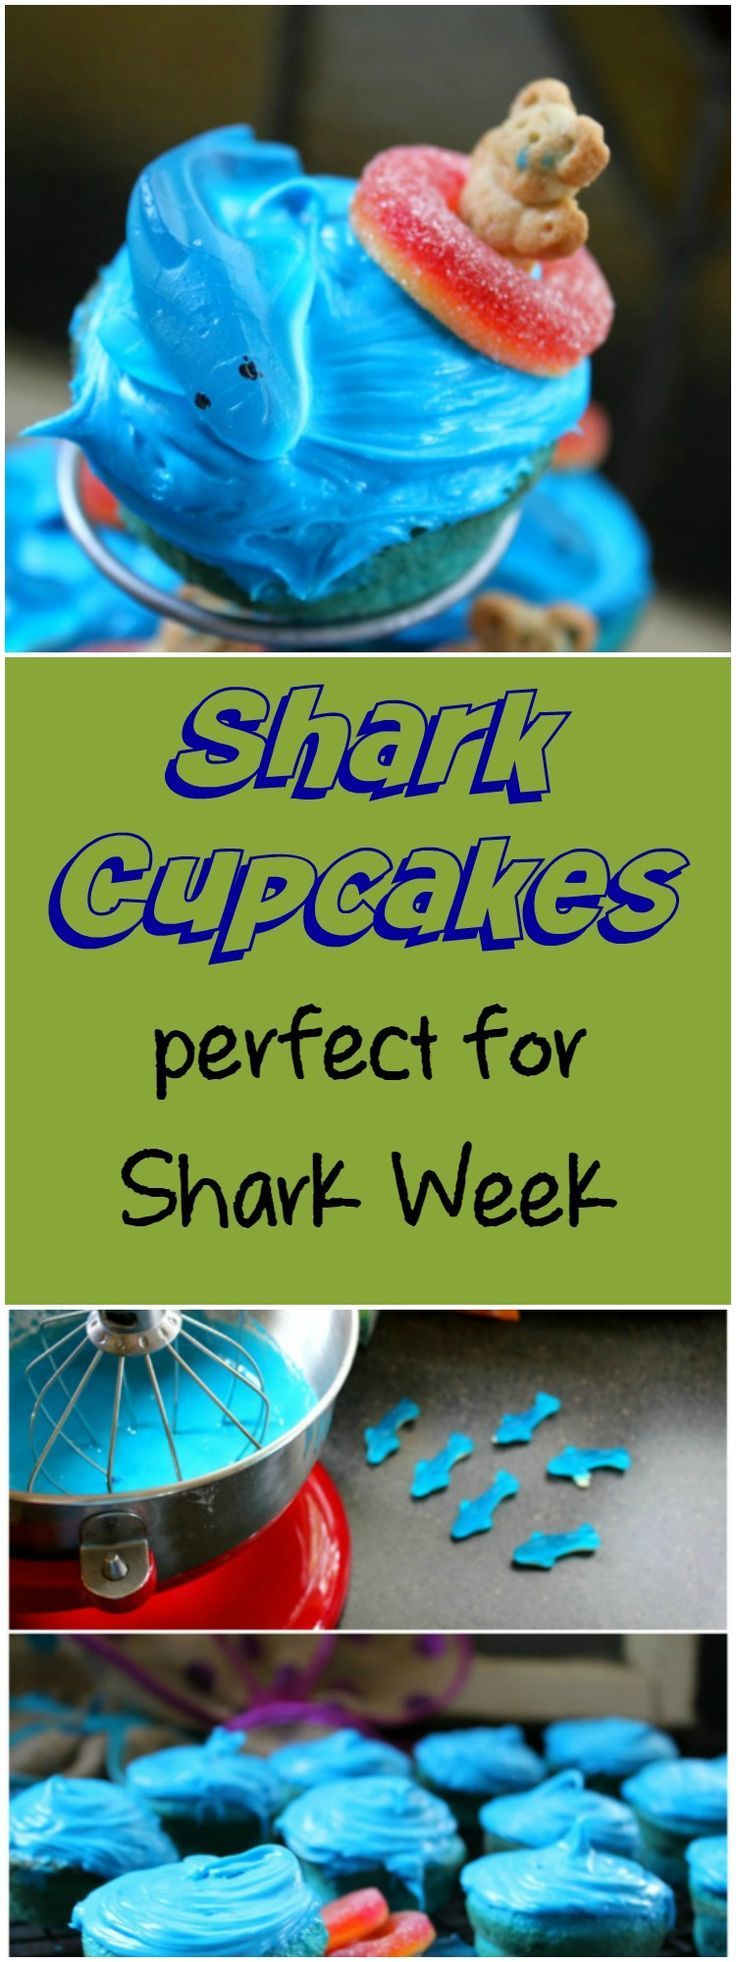 Shark Cupcakes Perfect for Shark Week - House of Faucis